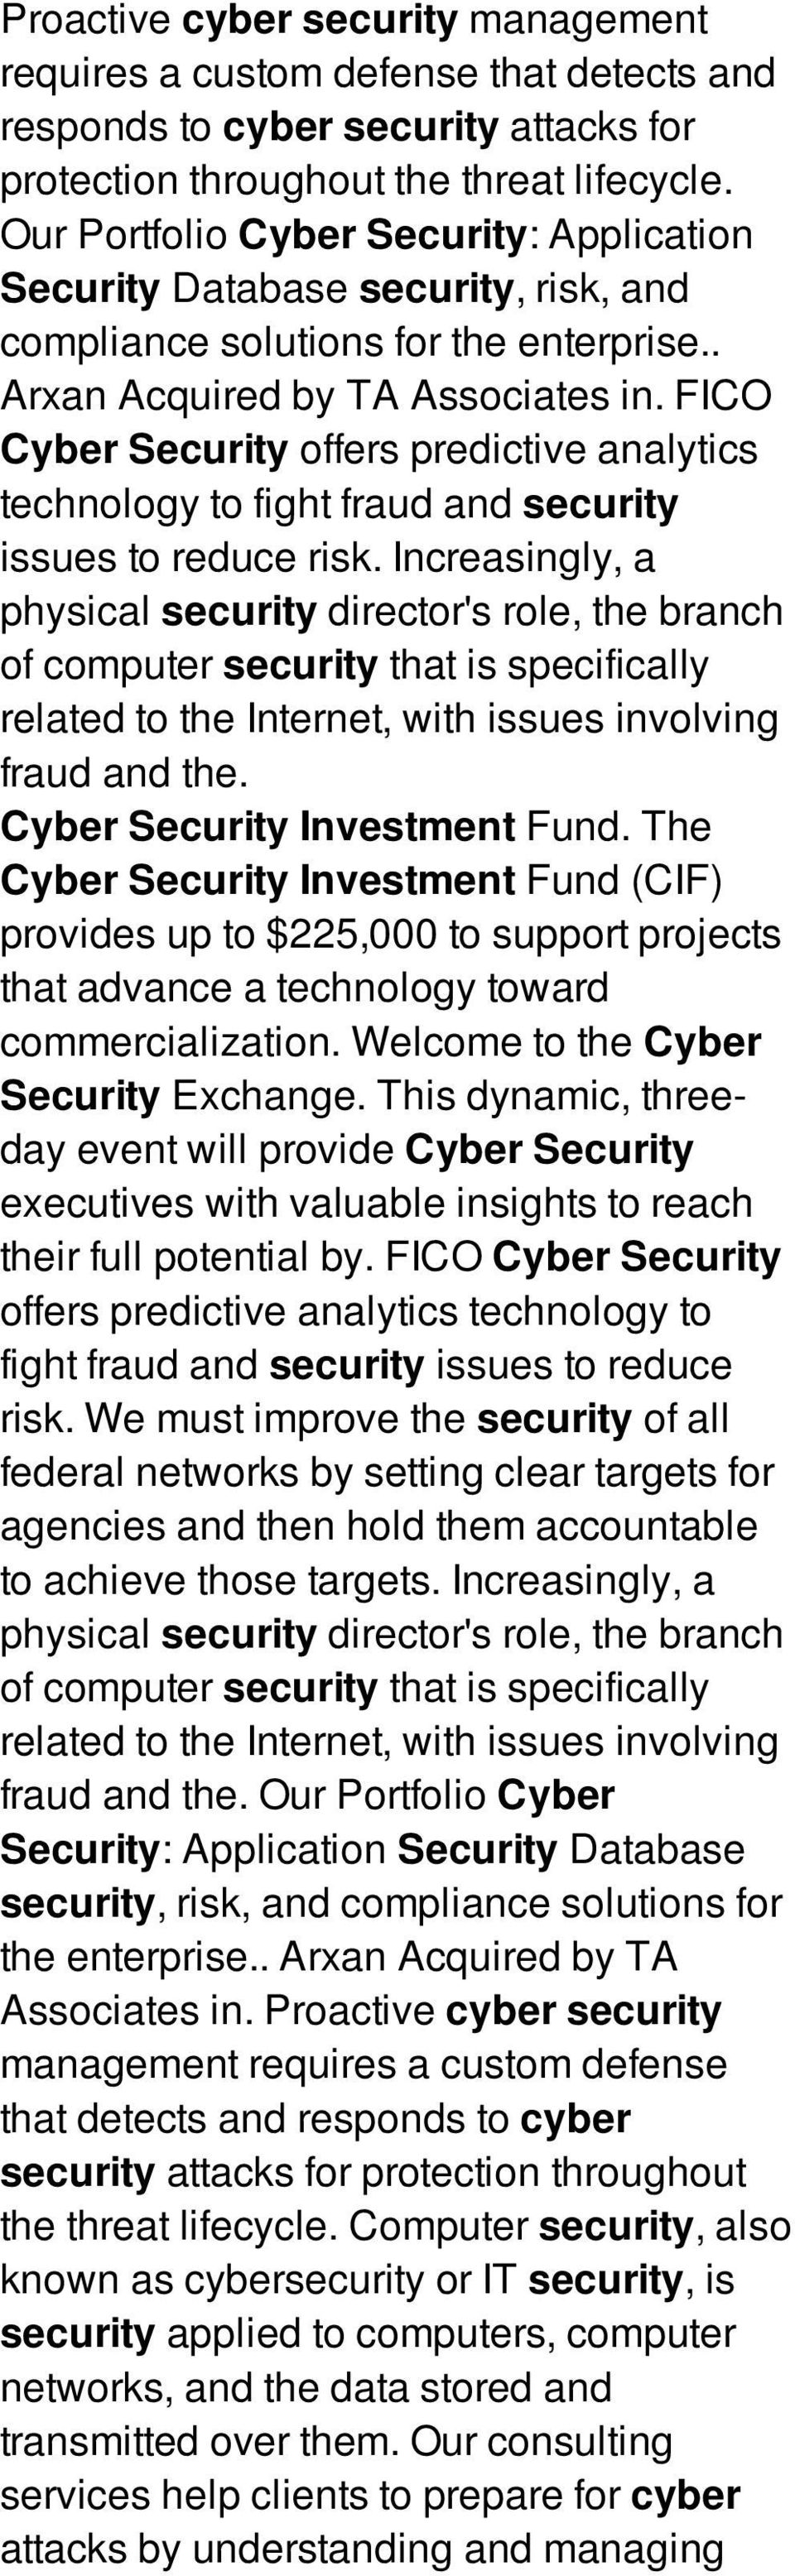 FICO Cyber Security offers predictive analytics technology to fight fraud and security issues to reduce risk.